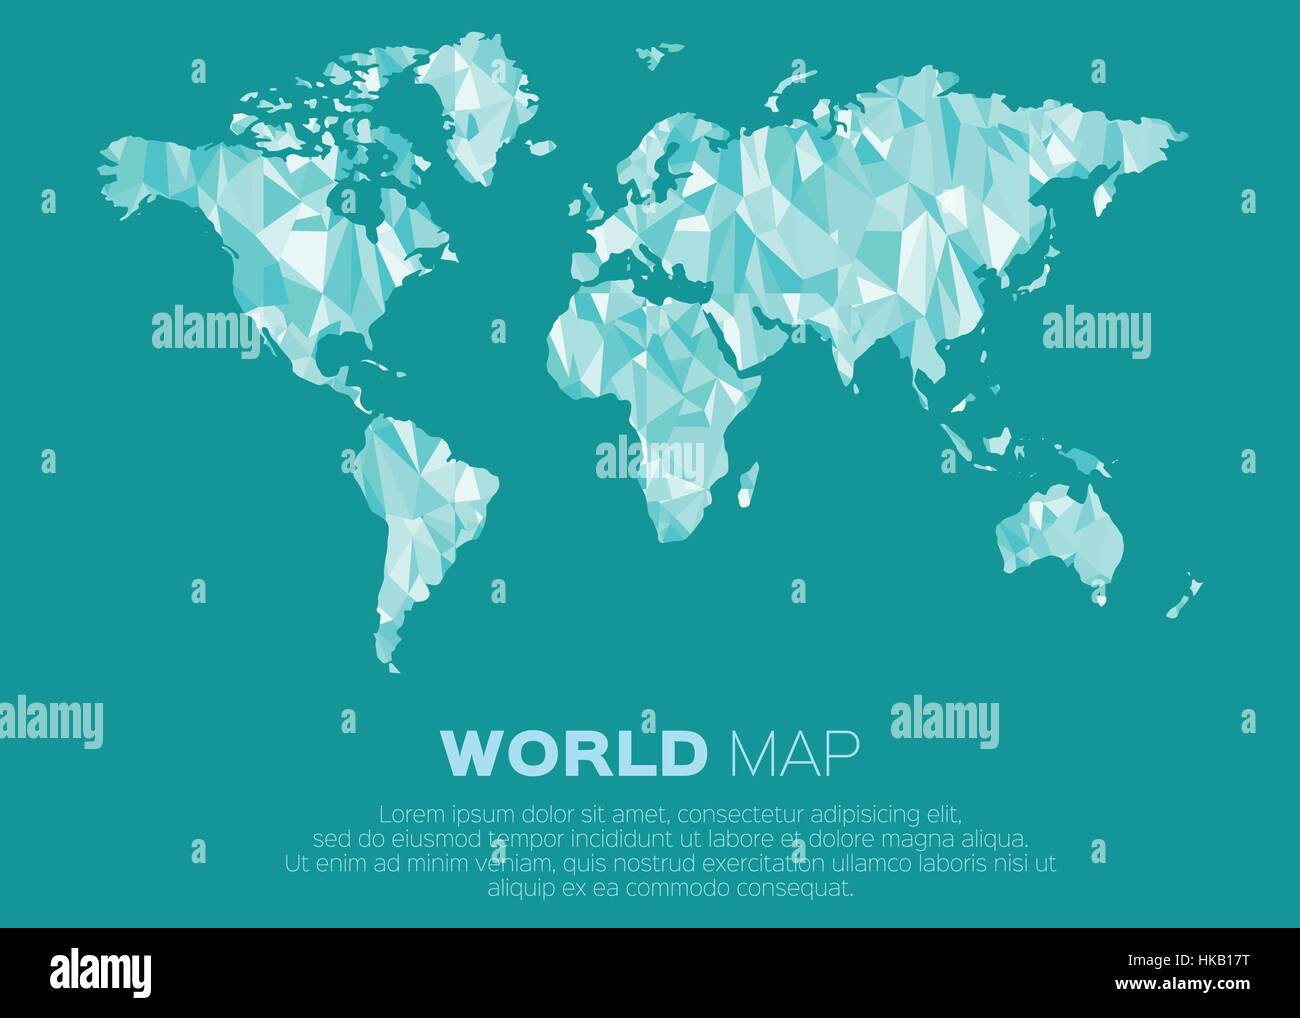 World map background in polygonal style abstract origami color world map background in polygonal style abstract origami color map design gumiabroncs Image collections